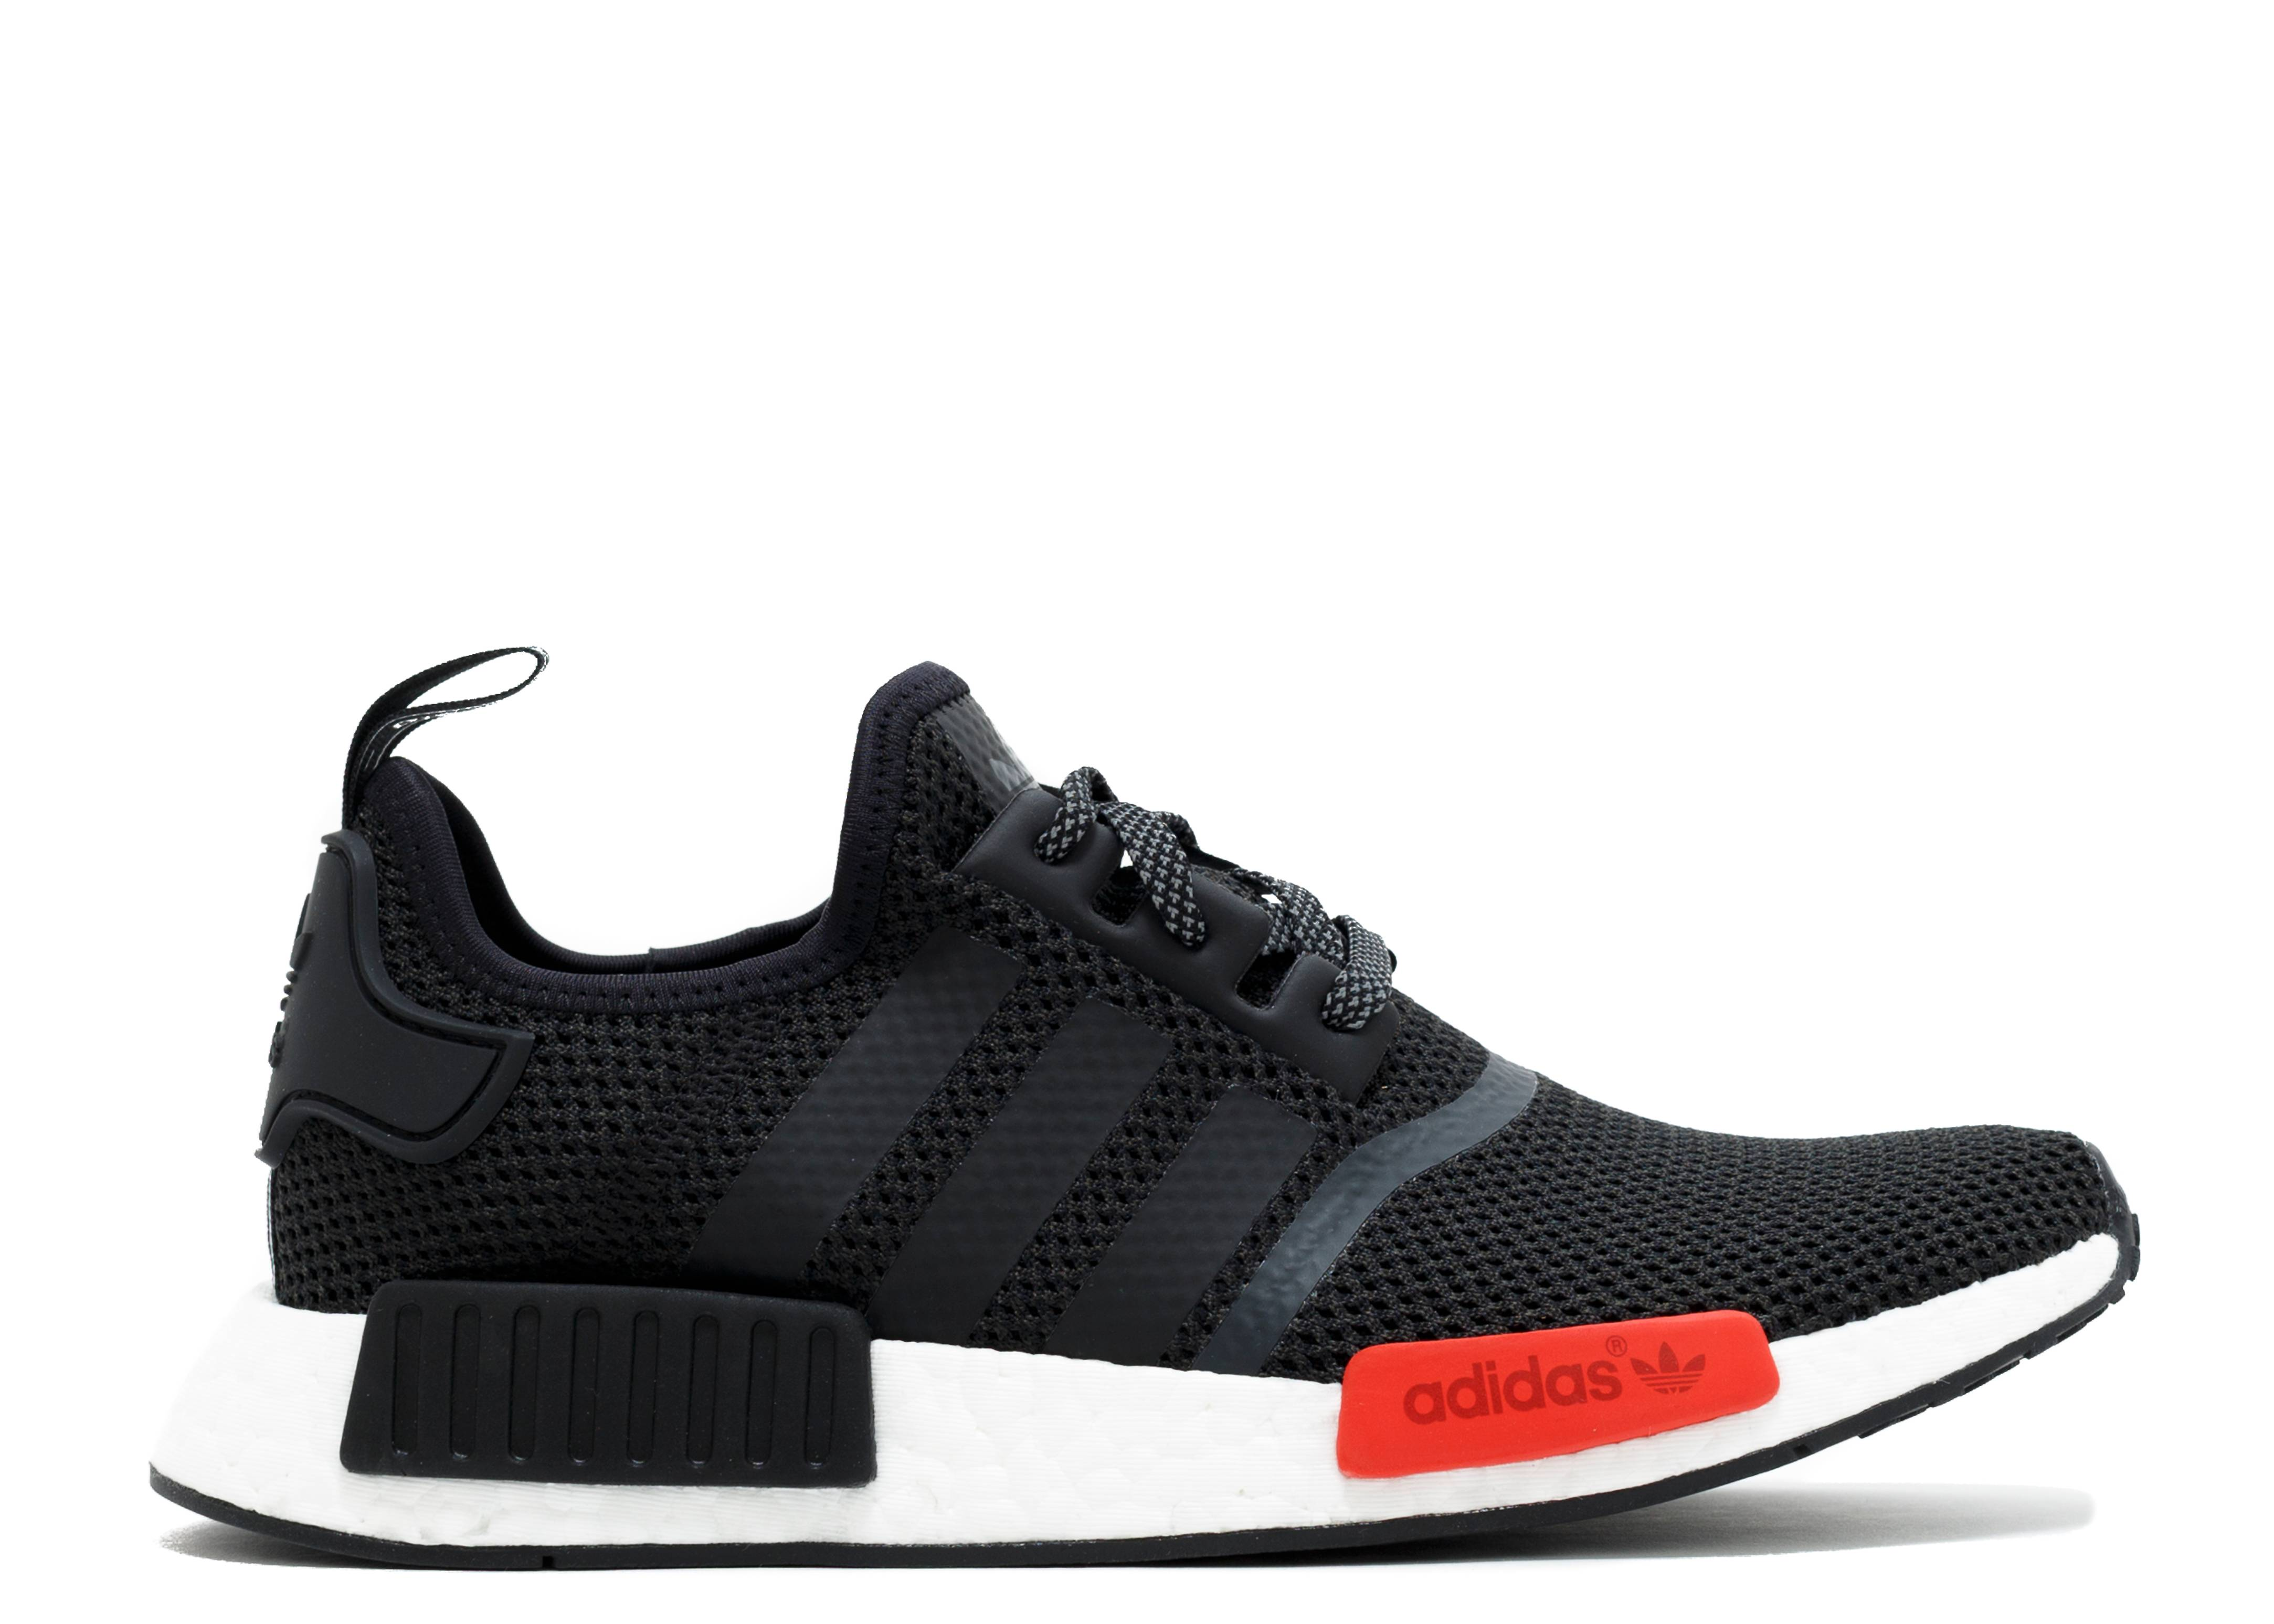 Adidas NMD_R1 X Footlocker Exclusive BlackRed for Men and Women